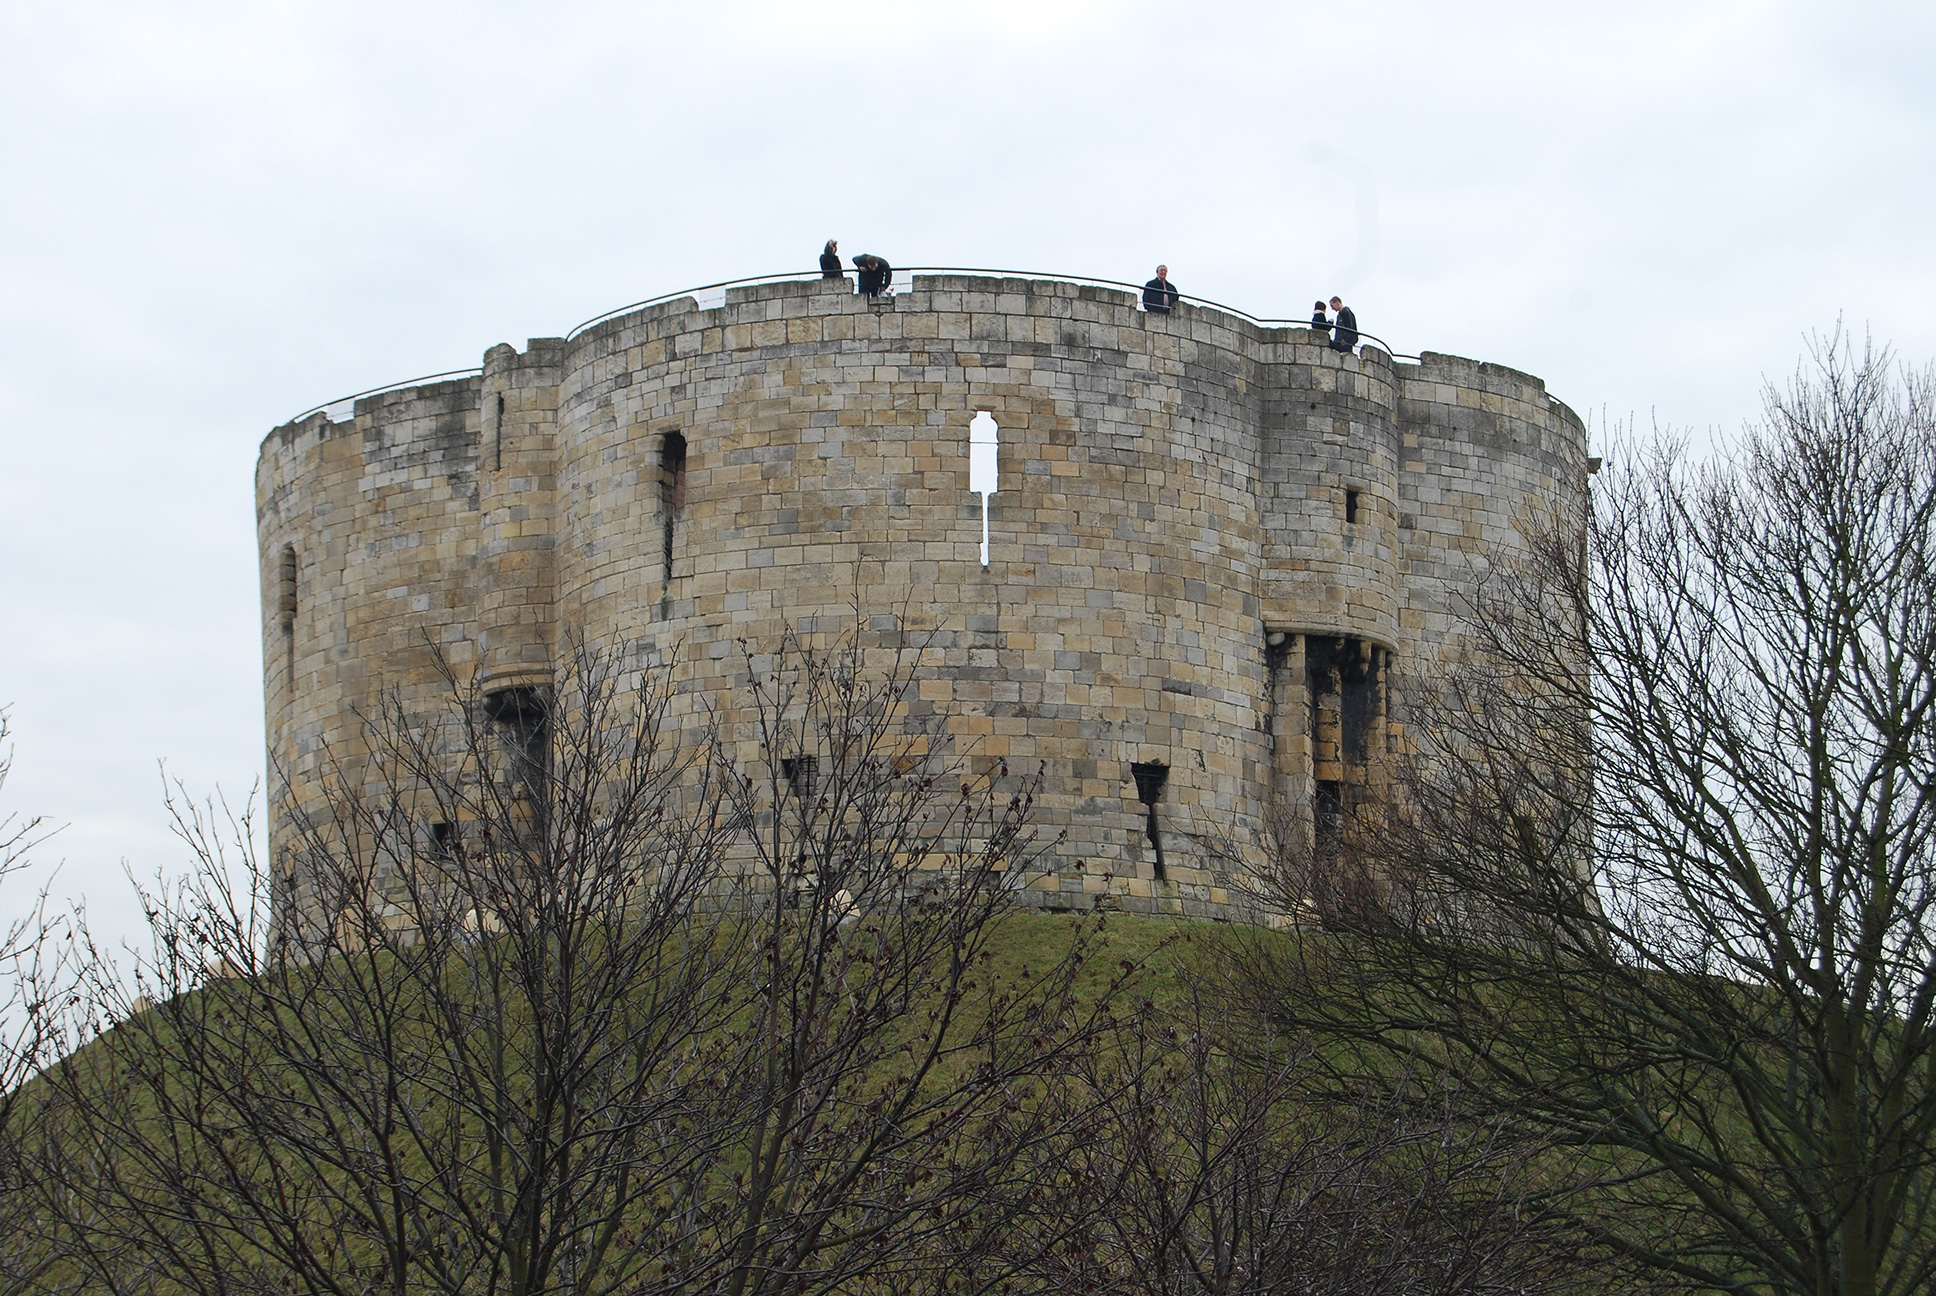 Clifford's Tower of York Castle